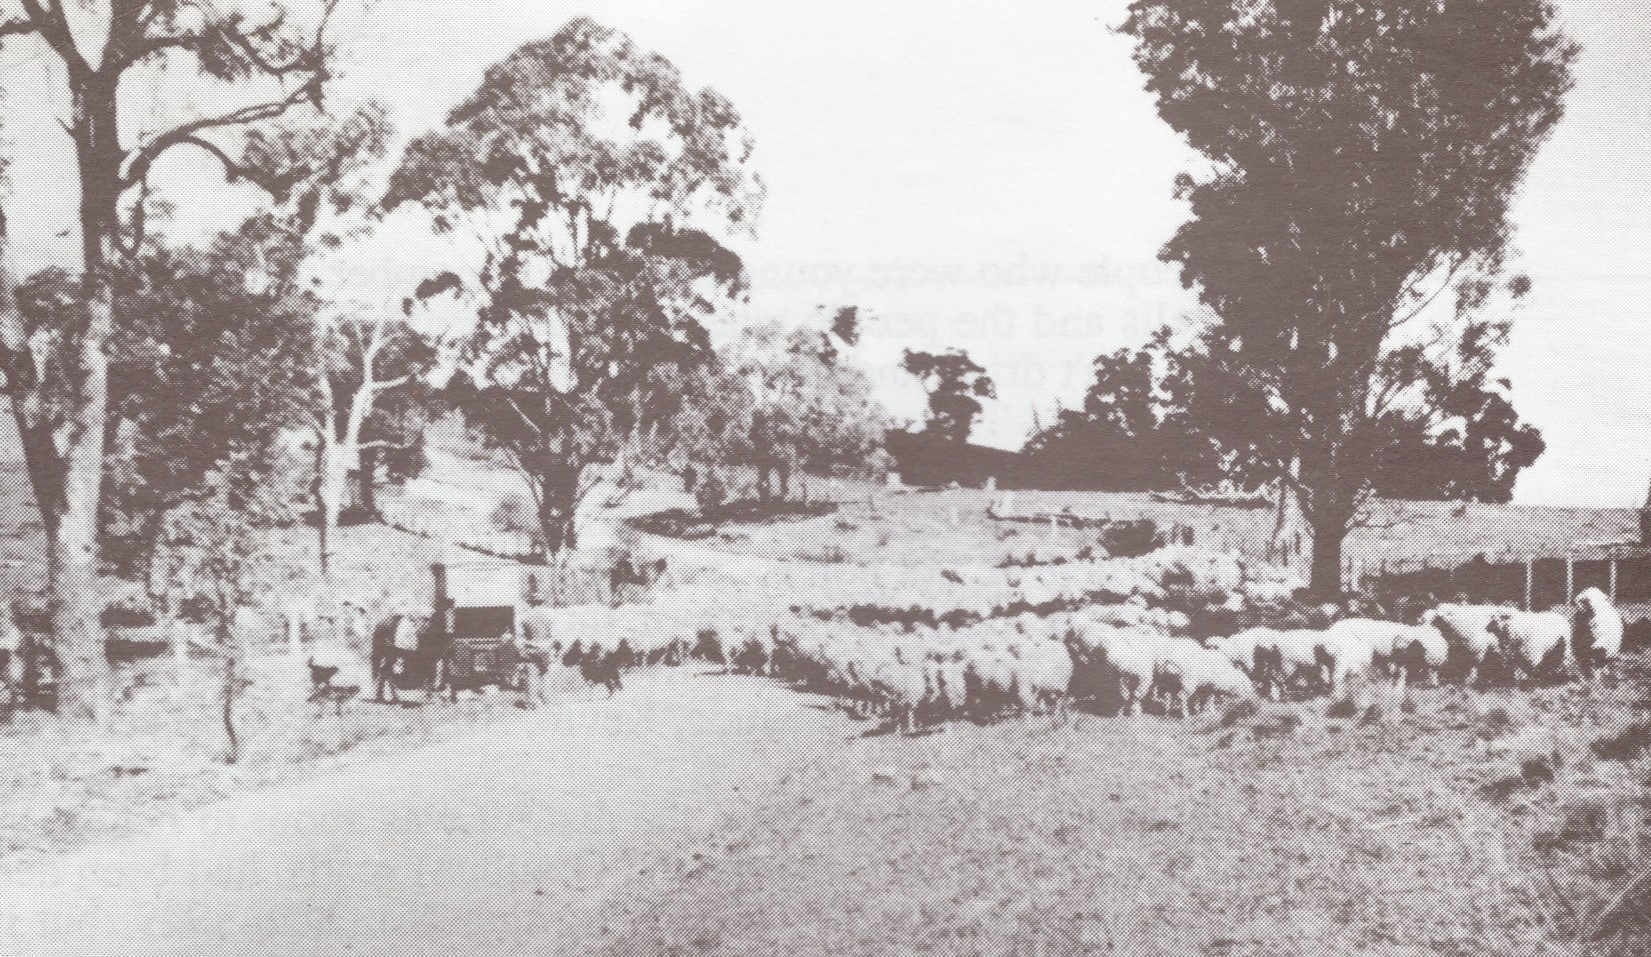 Droving sheep on the Rockley road at Bla